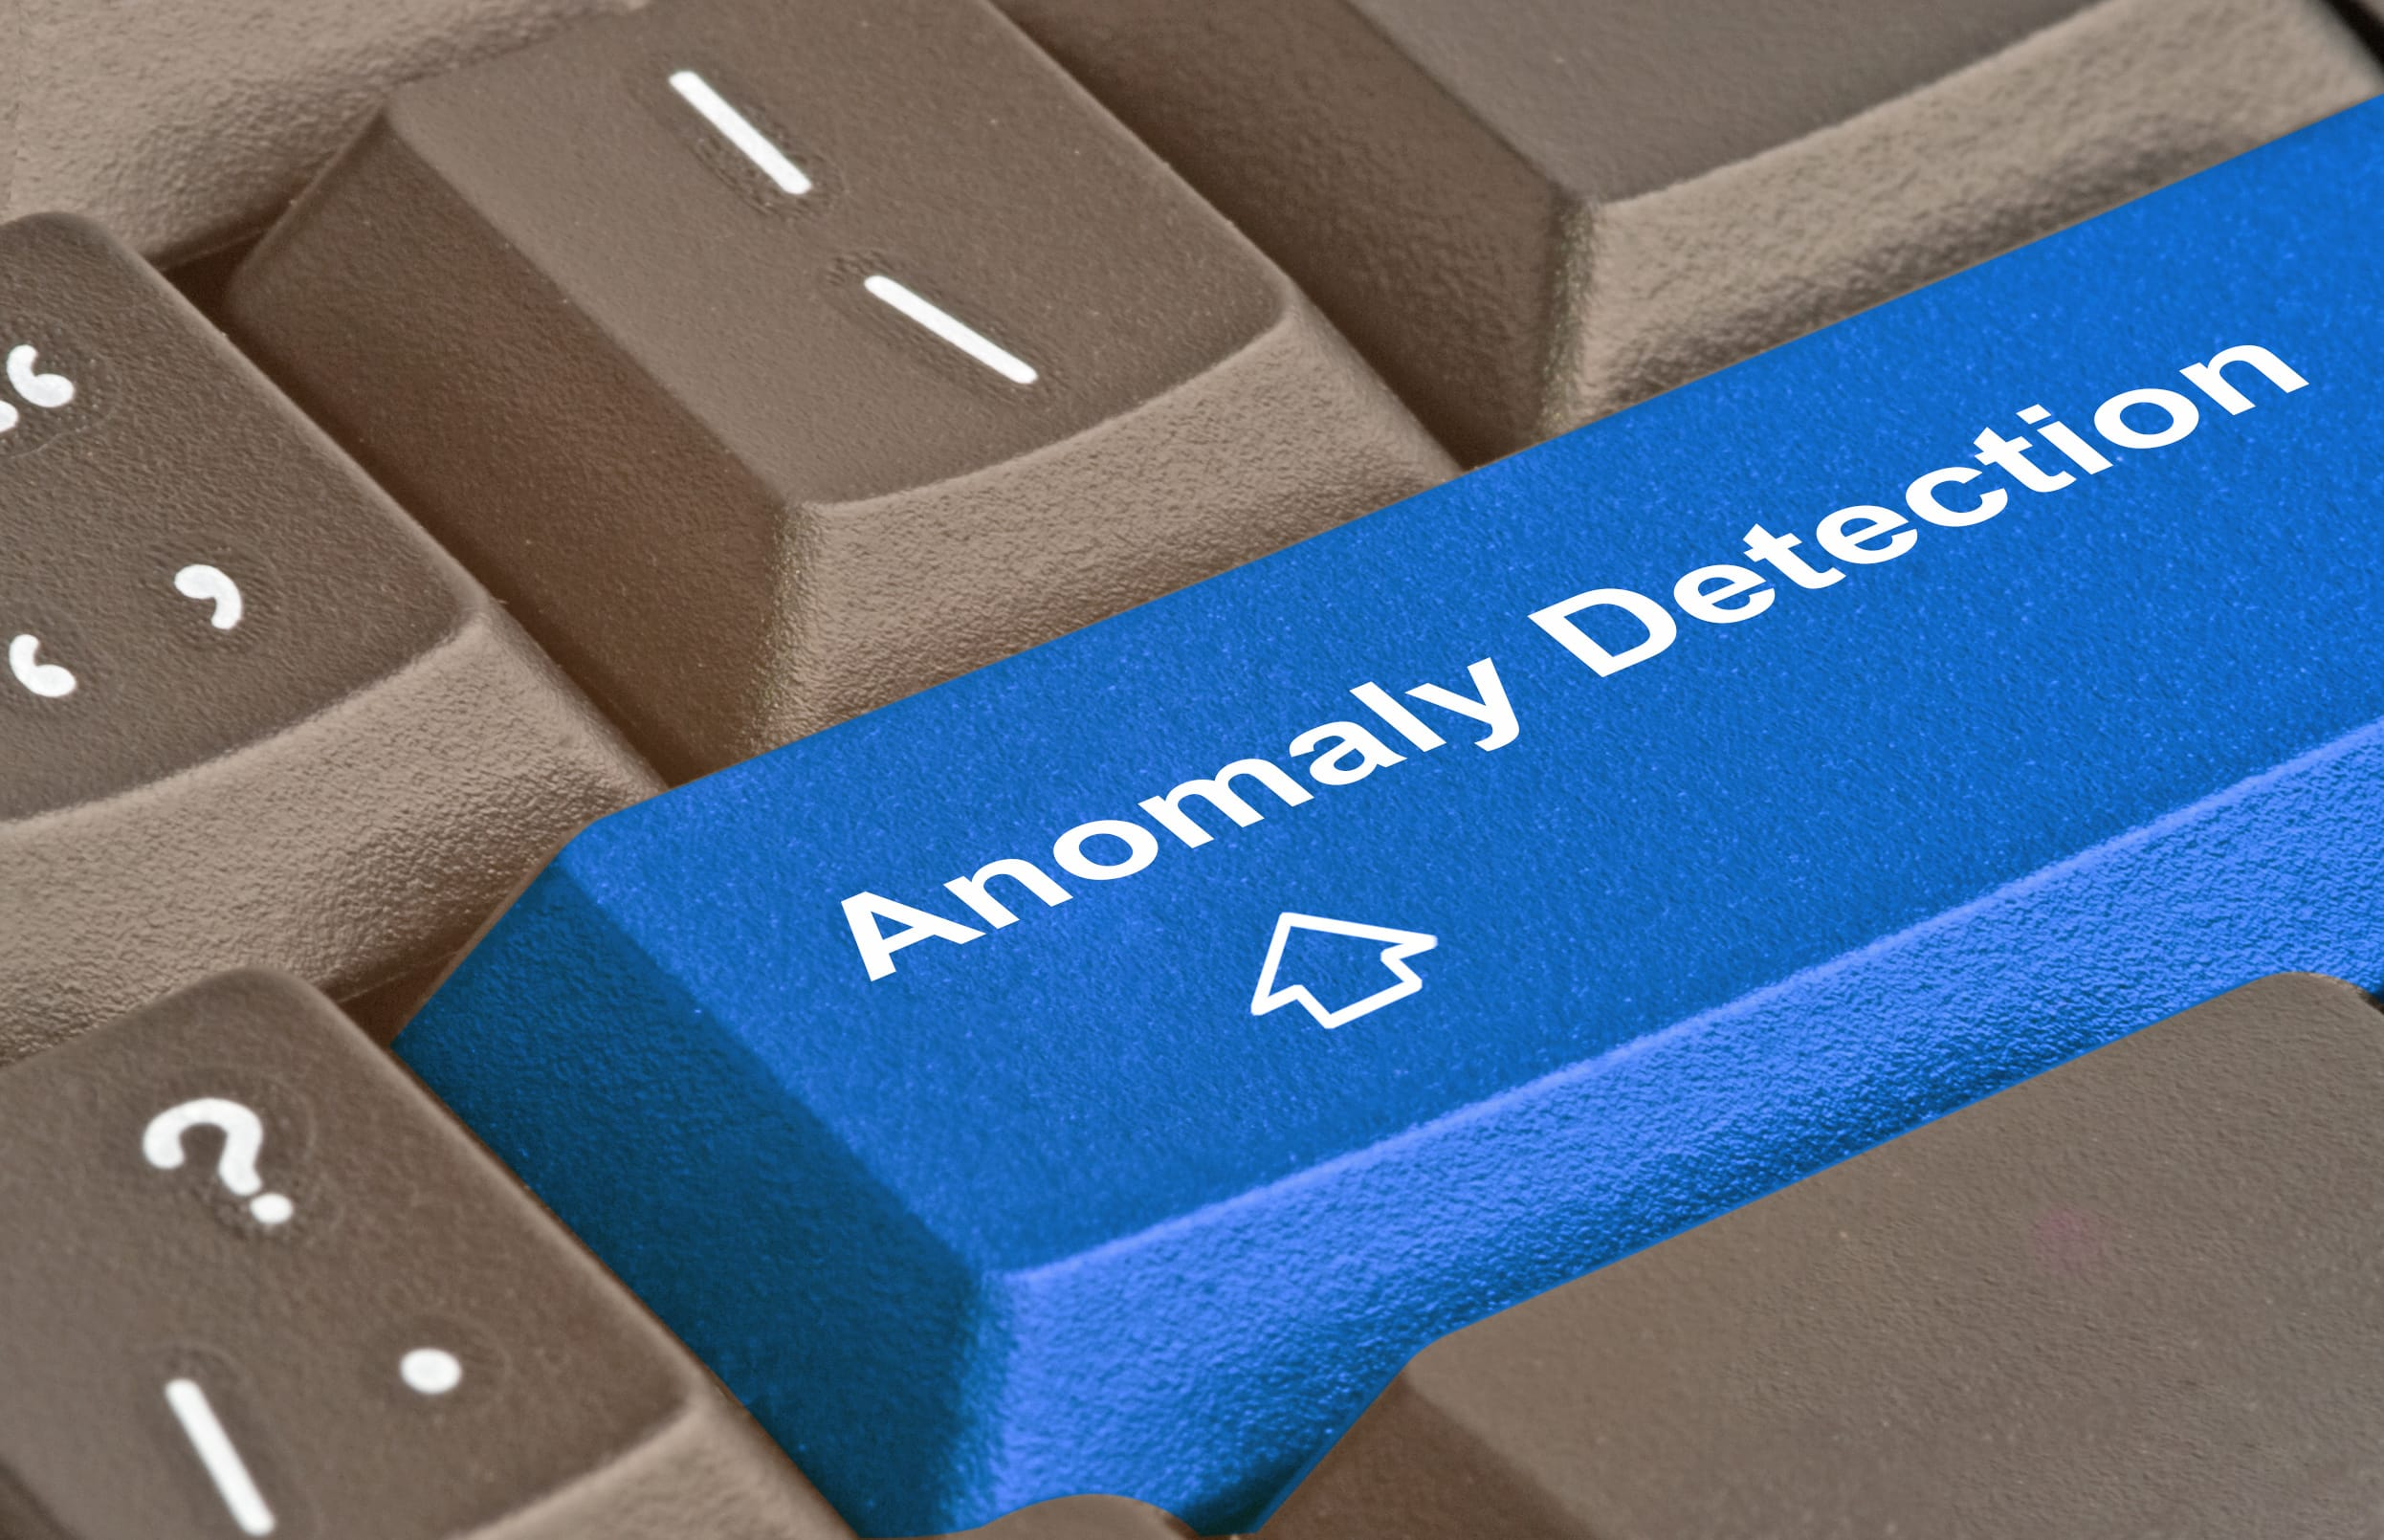 hot keys for Anomaly Detection